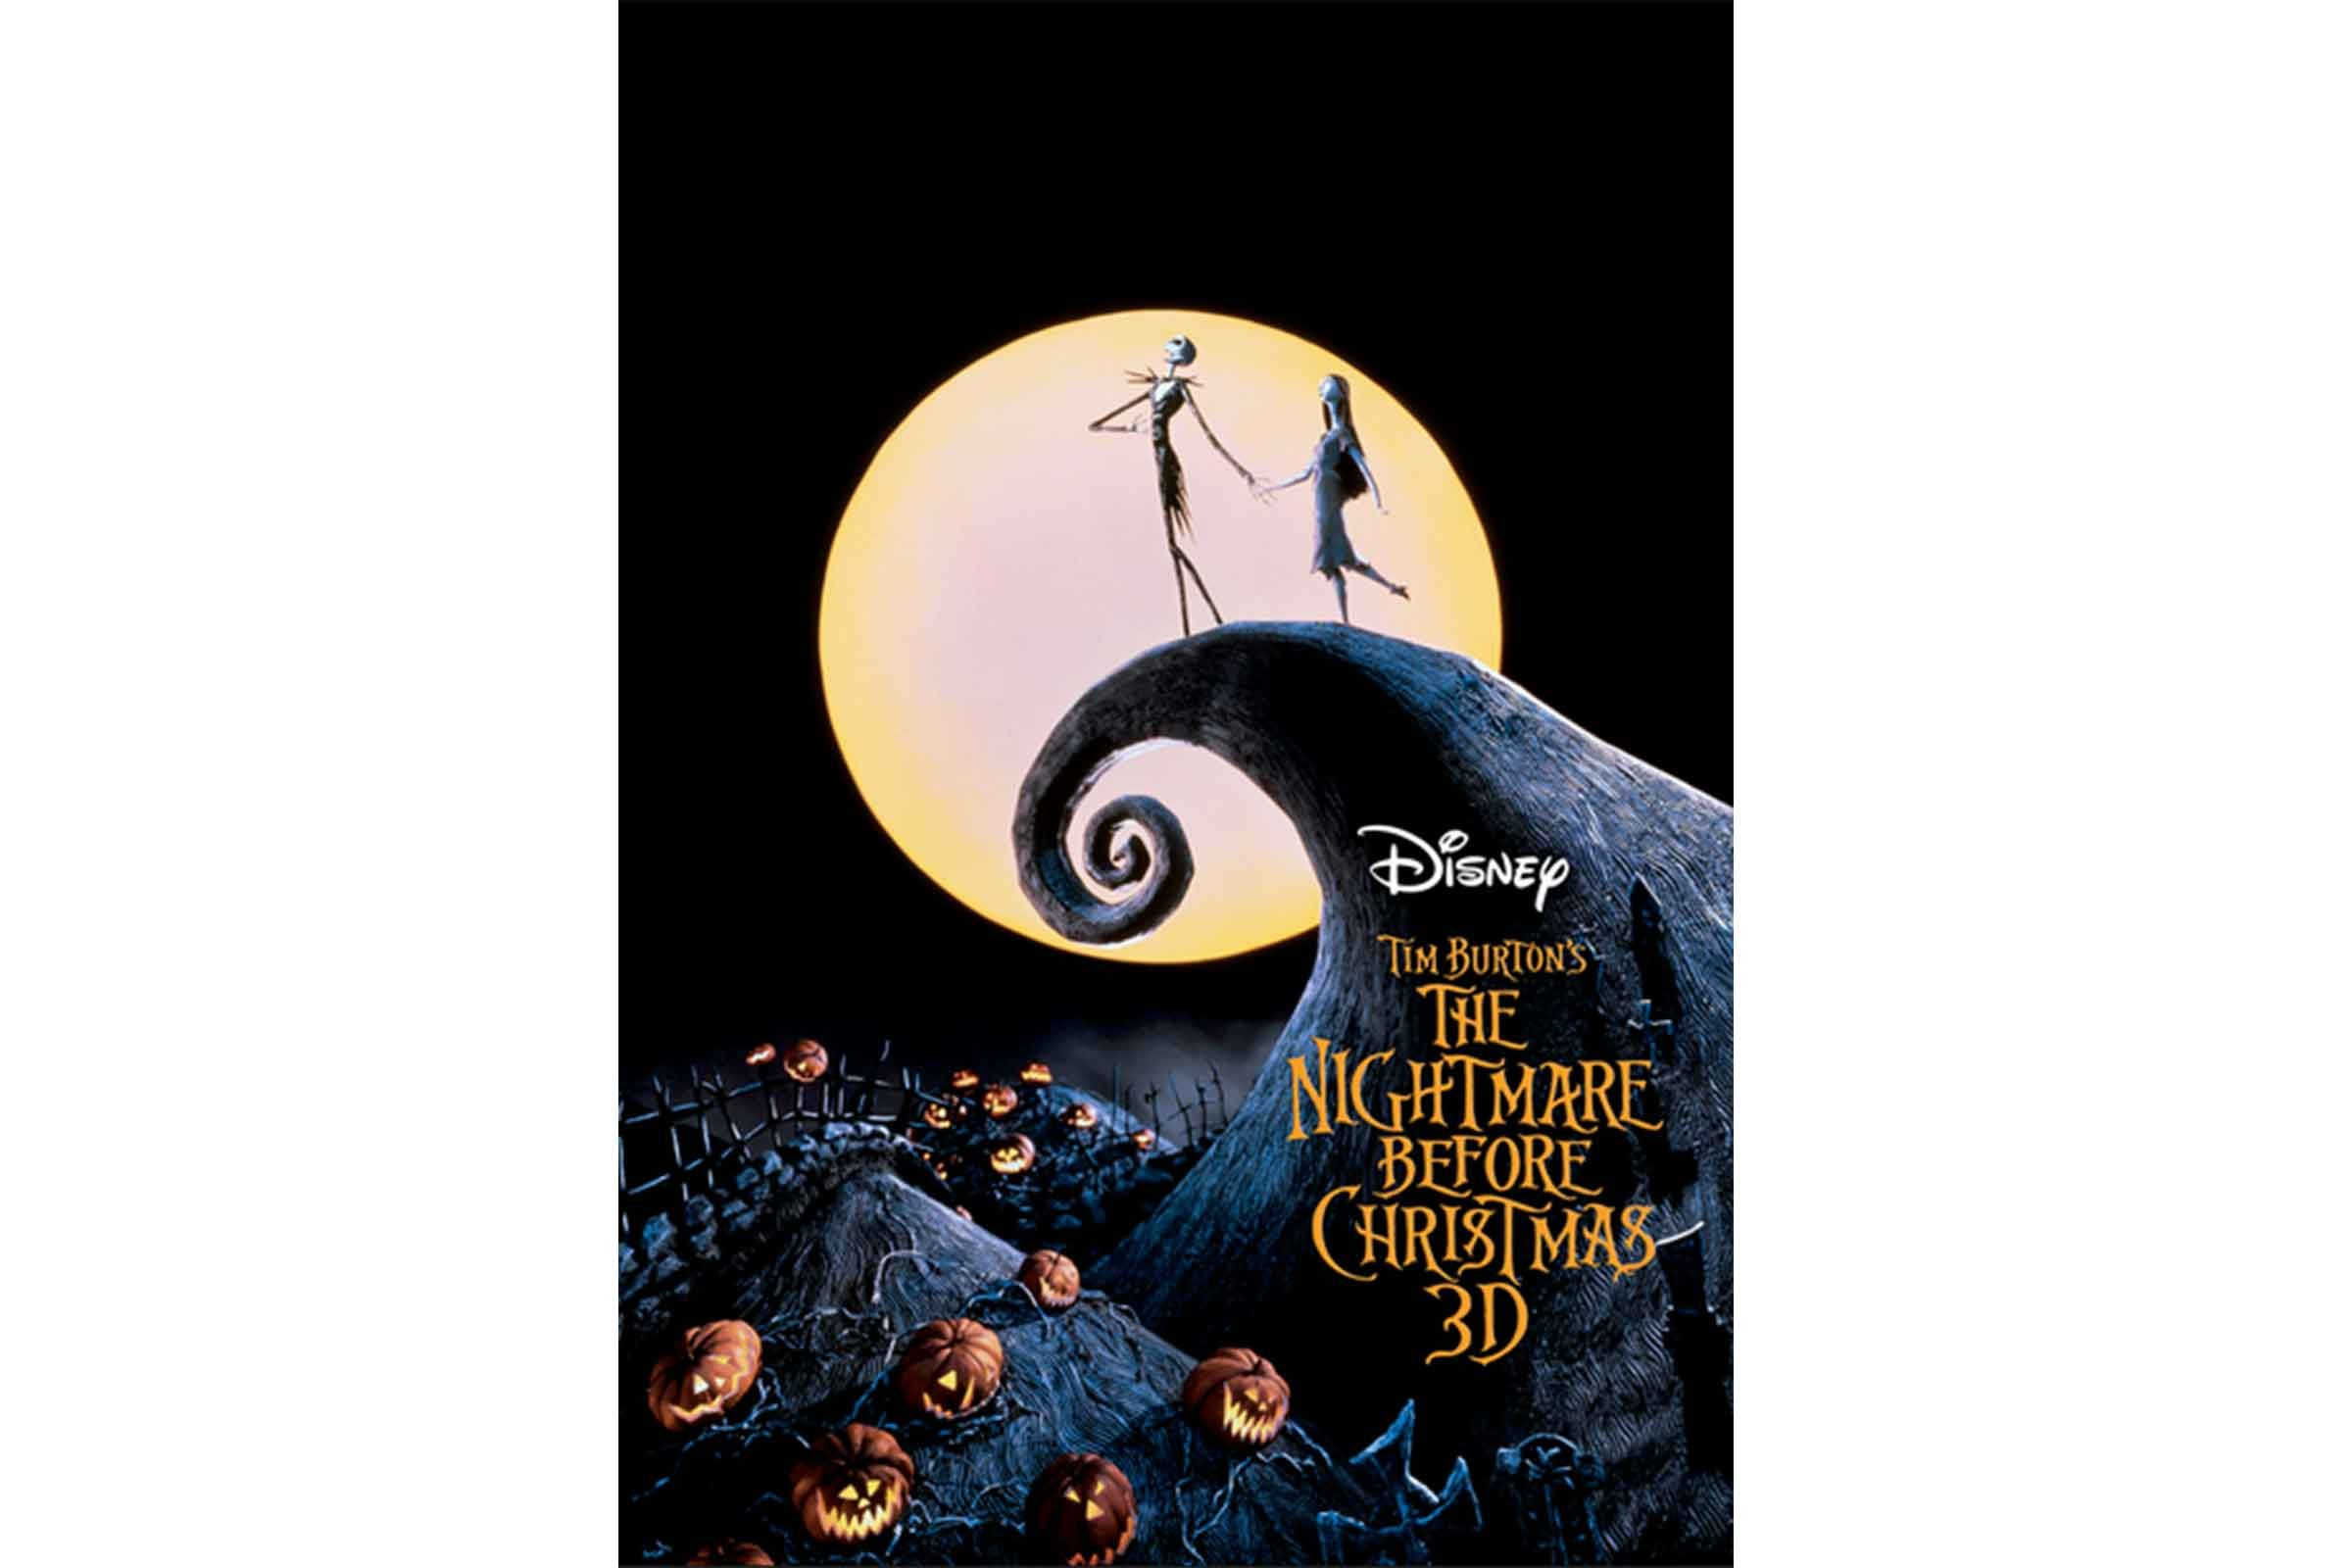 the nightmare before christmas pg - Halloween Movies Rated Pg